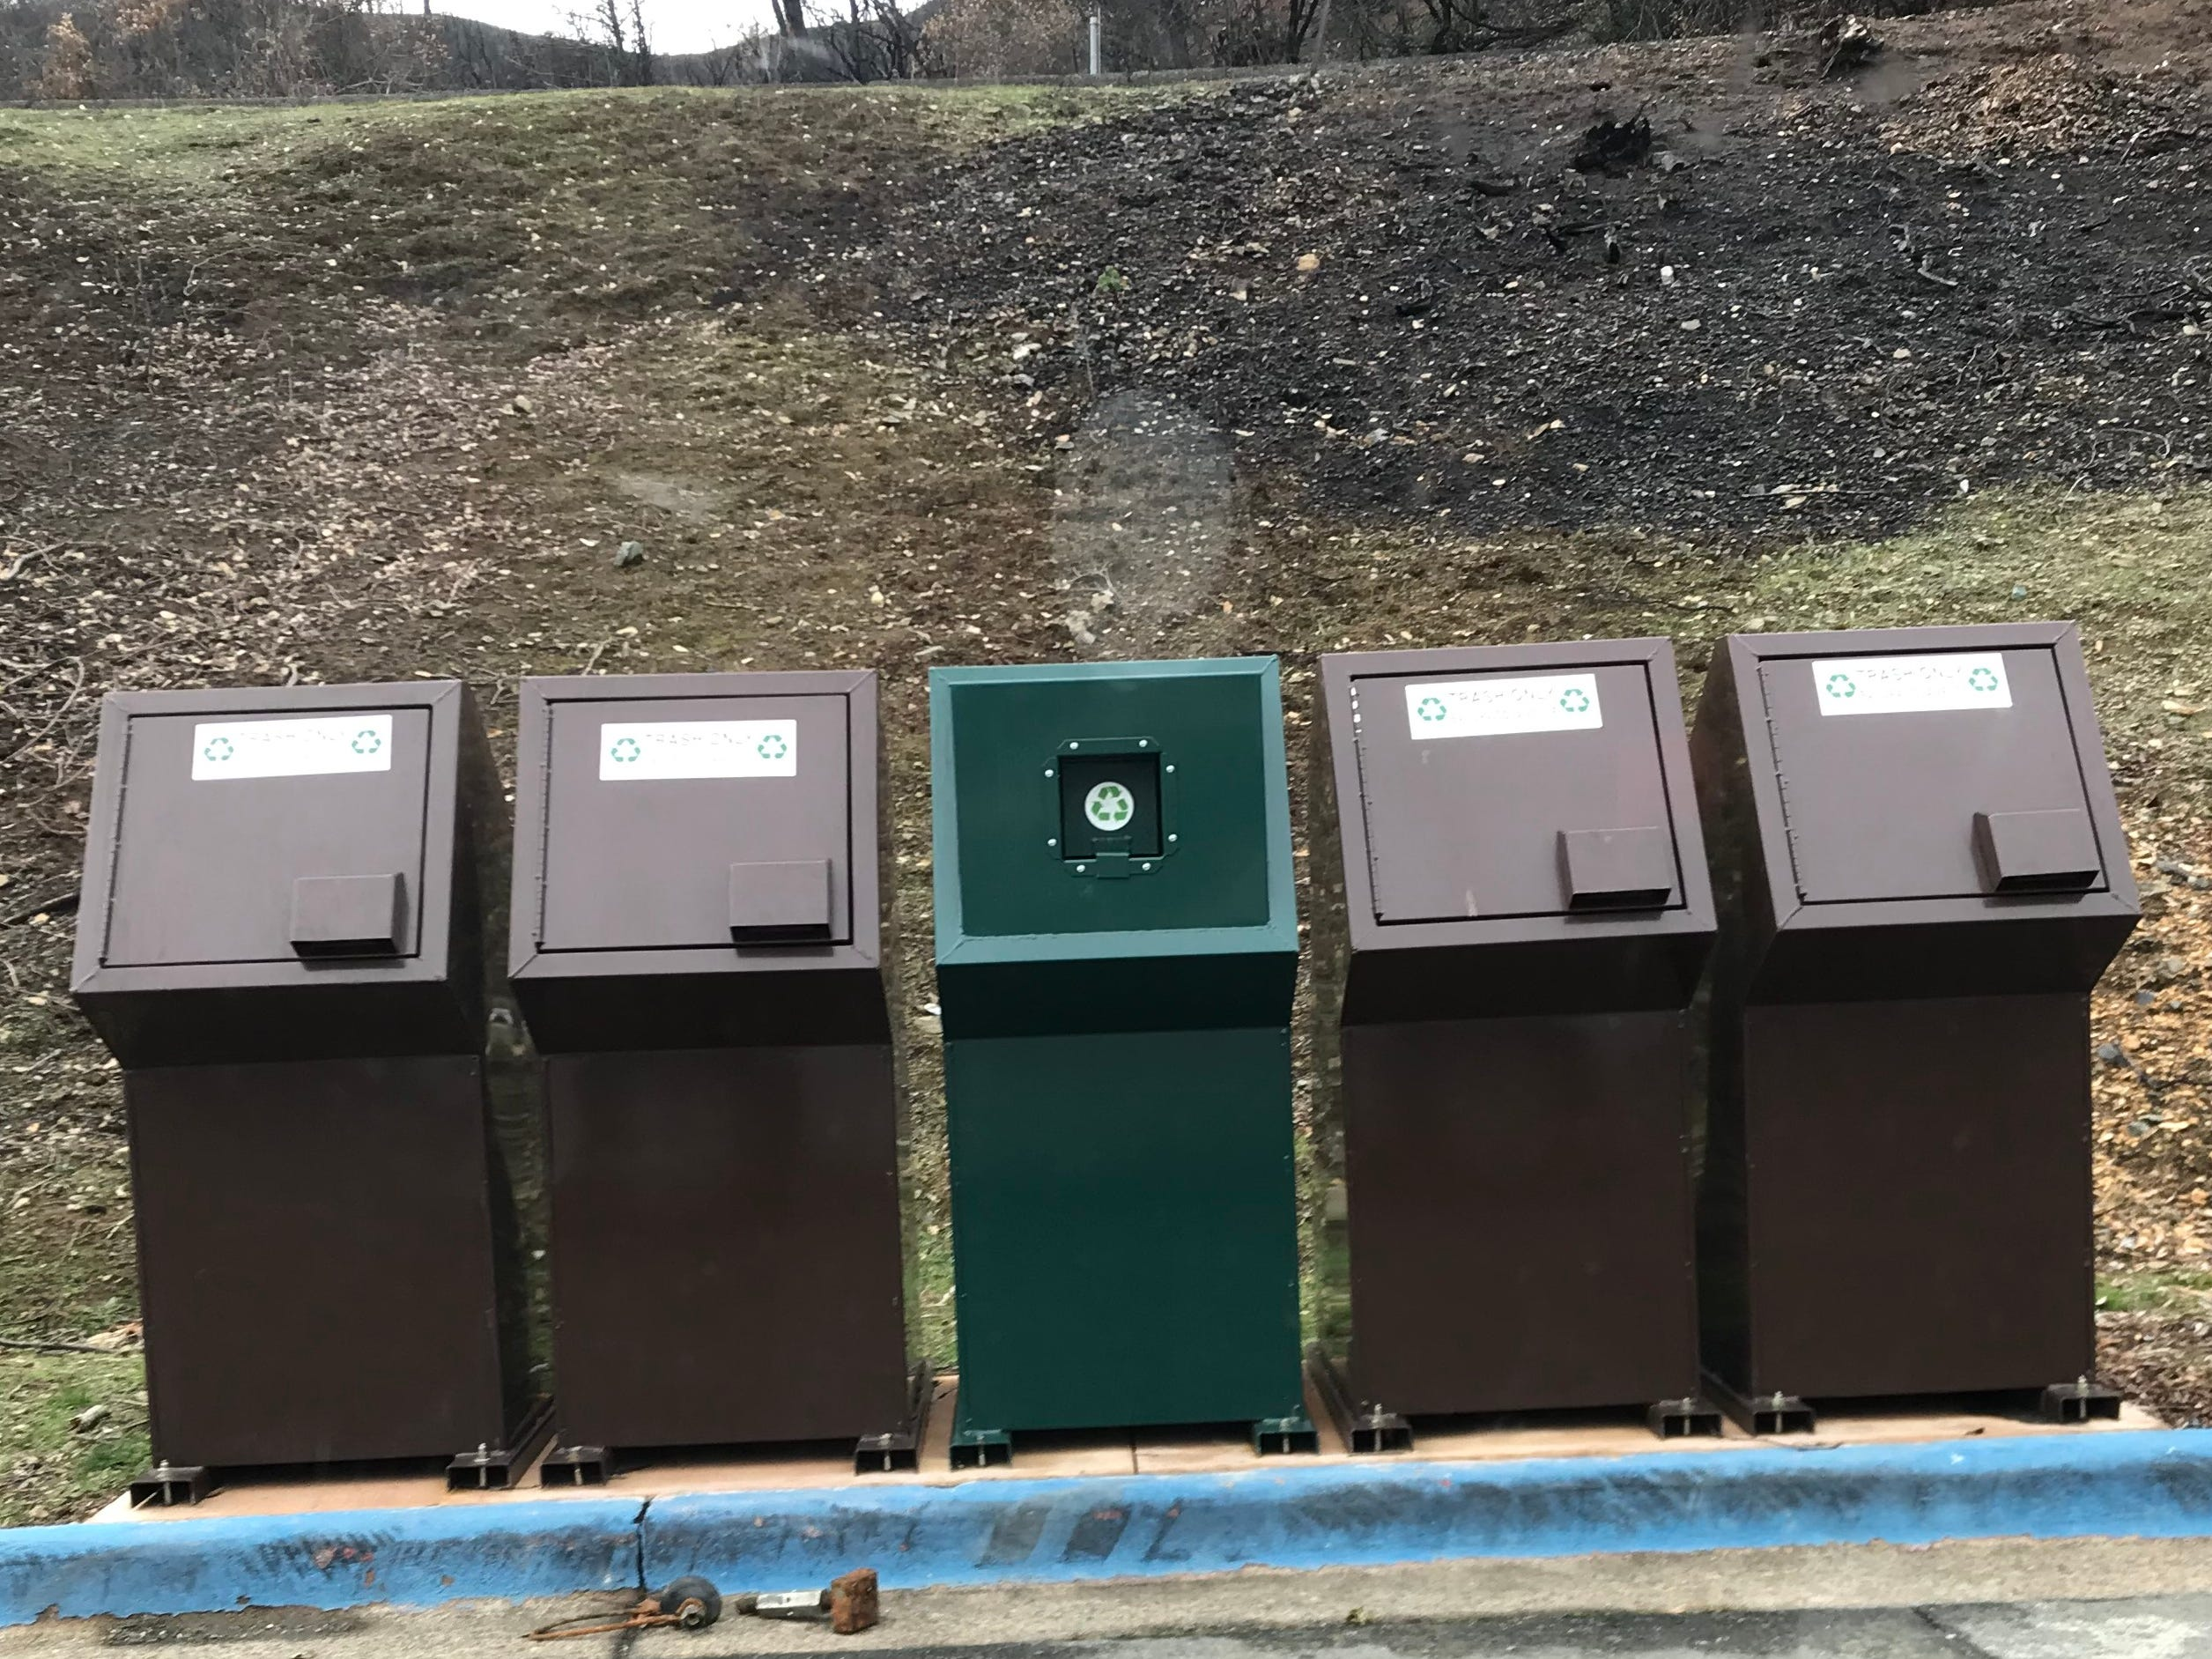 The trash bins at Whiskey Creek boat launch on Monday, Jan.7, 2019.